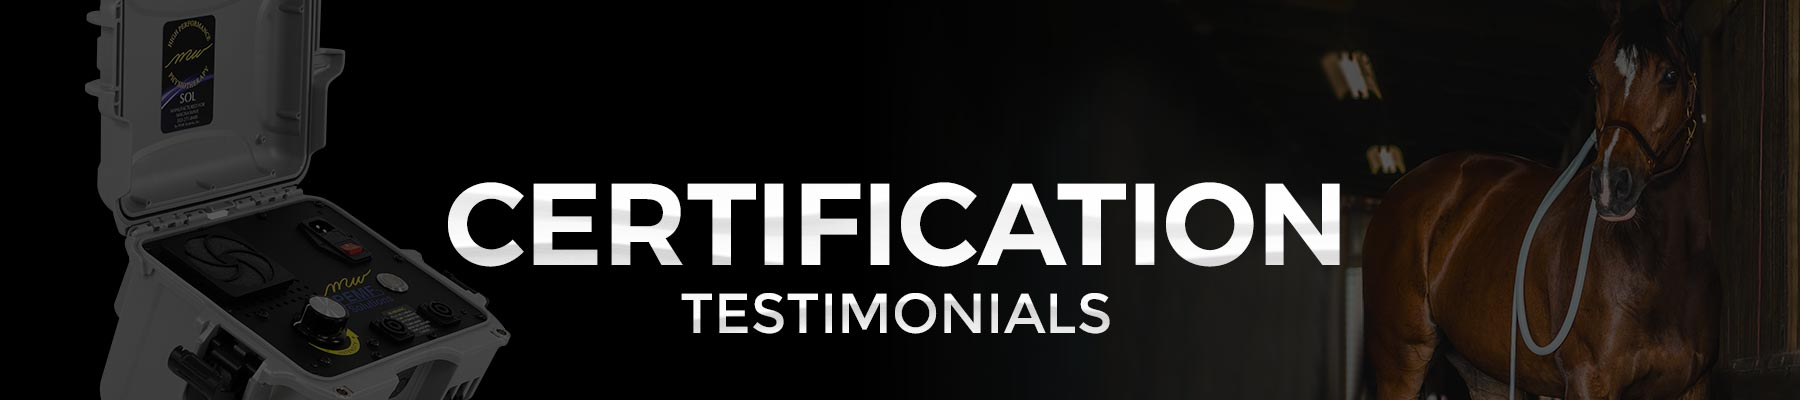 Magna Wave Certification Testimonials